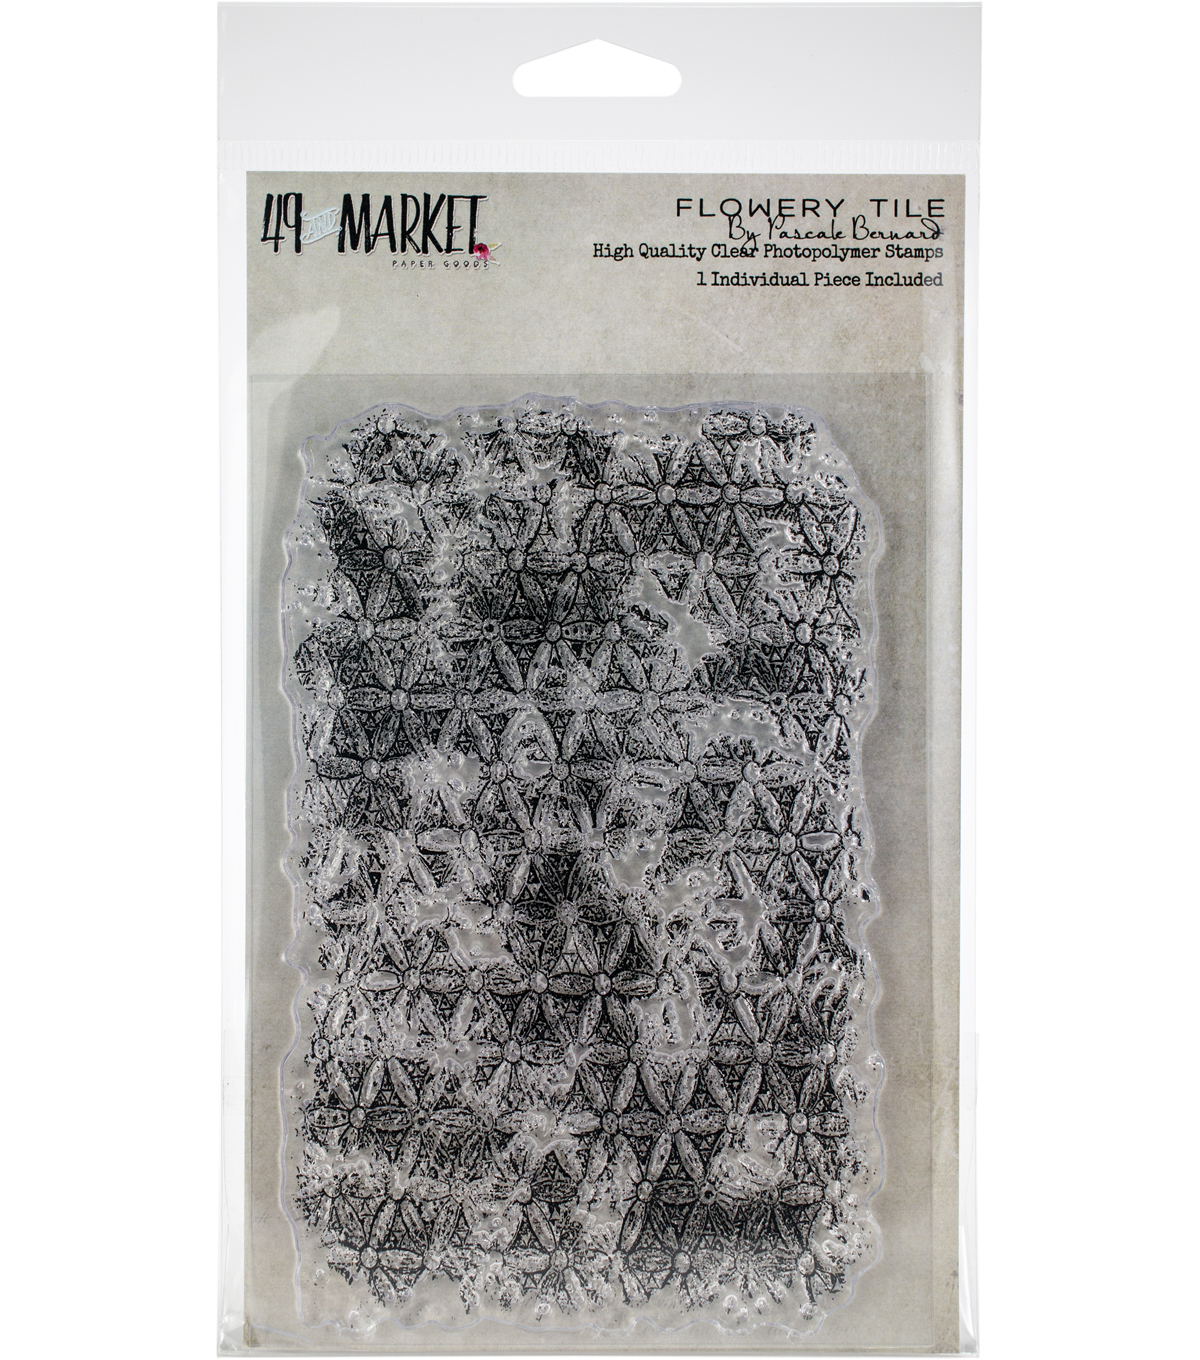 49 And Market Pascale Bernard Clear Photopolymer Stamp-Flowery Tile